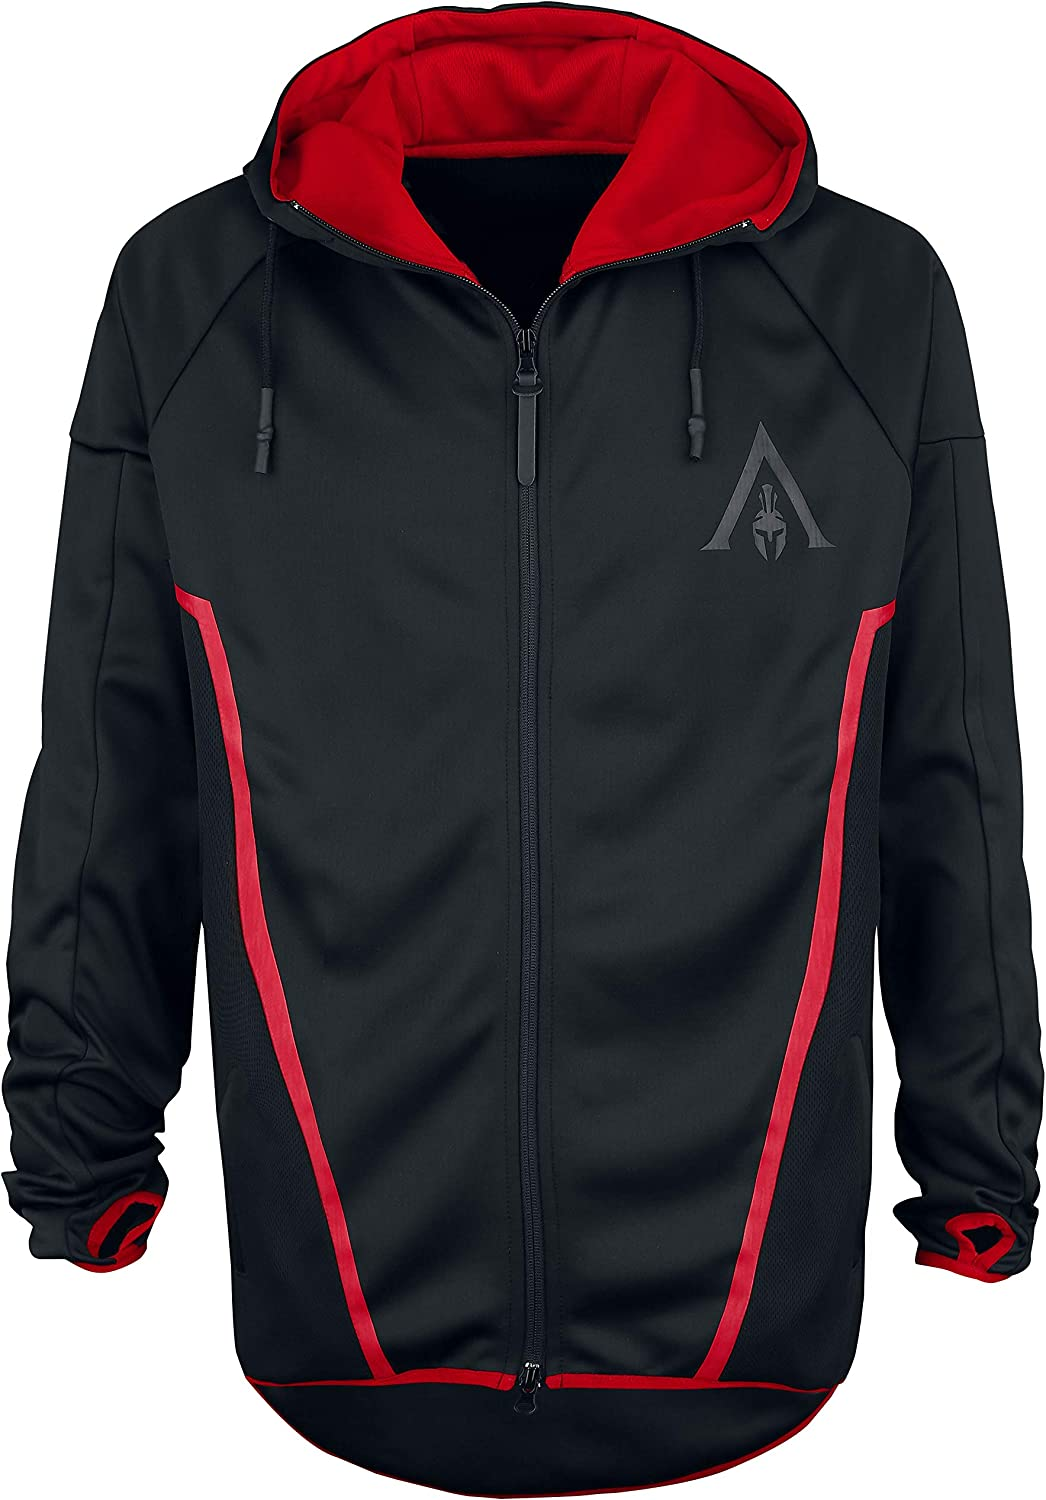 TALLA L. Assassin's Creed Sweatshirt Odyssey - Technical Hexagonal Men's Hoodie Black